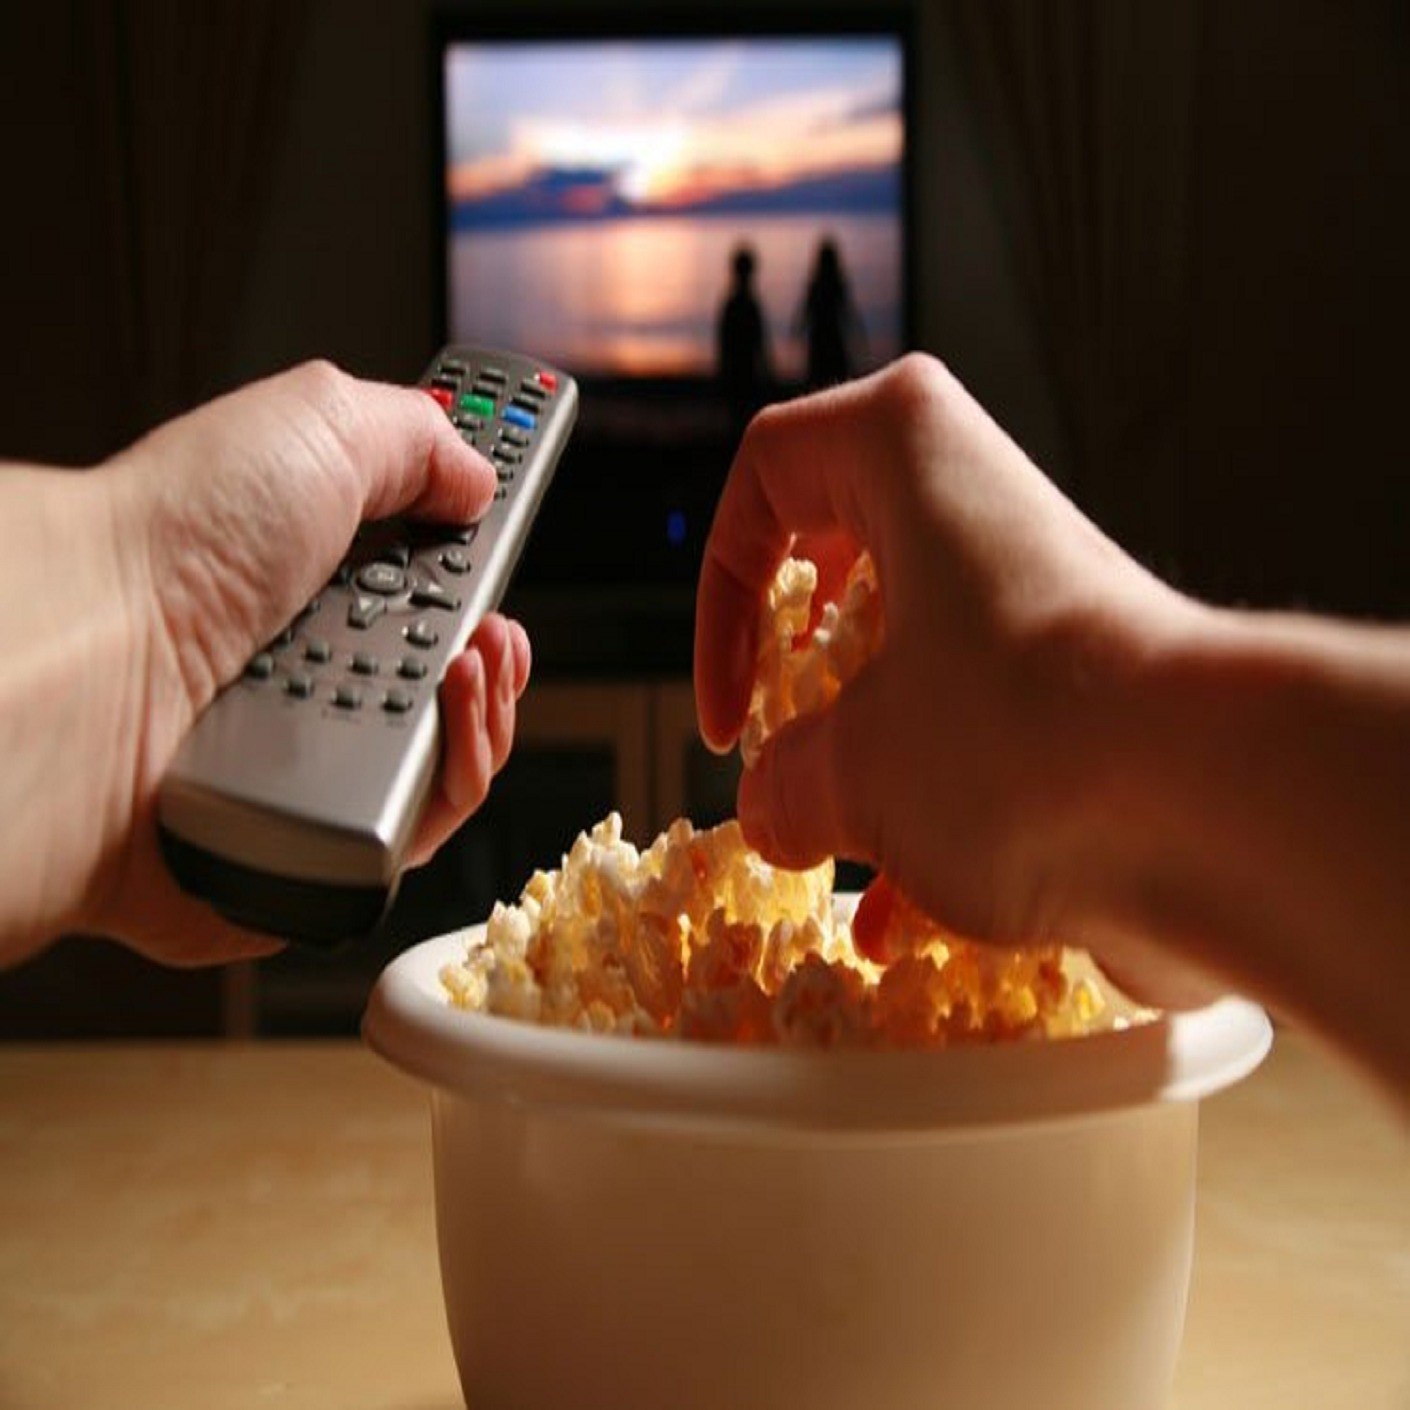 Top 10 Comfort Food Movies